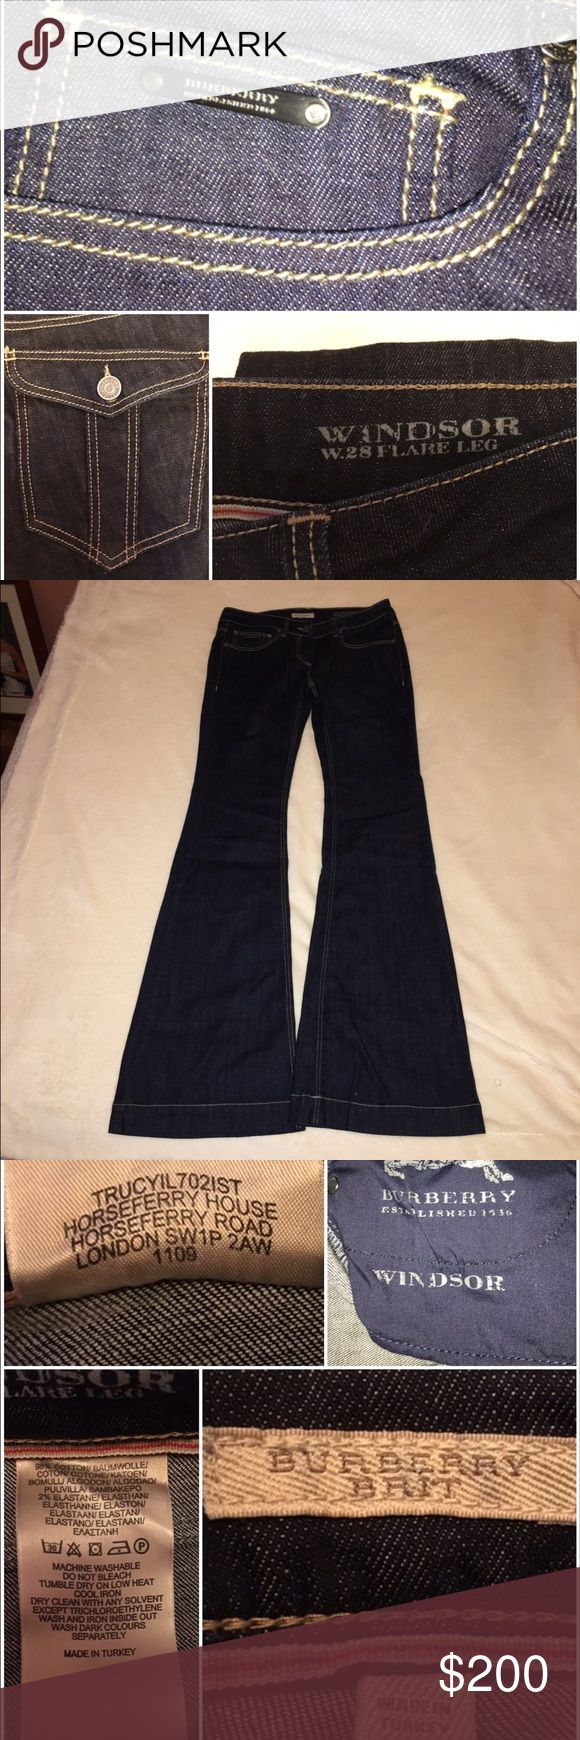 NWOT Burberry Brit Windsor Flare Leg Jeans NWOT Burberry Brit size 27 Windsor Flare Leg dark wash jeans. 5 pocket, backs button. These are a nice flattering jean!! Burberry Jeans Flare & Wide Leg